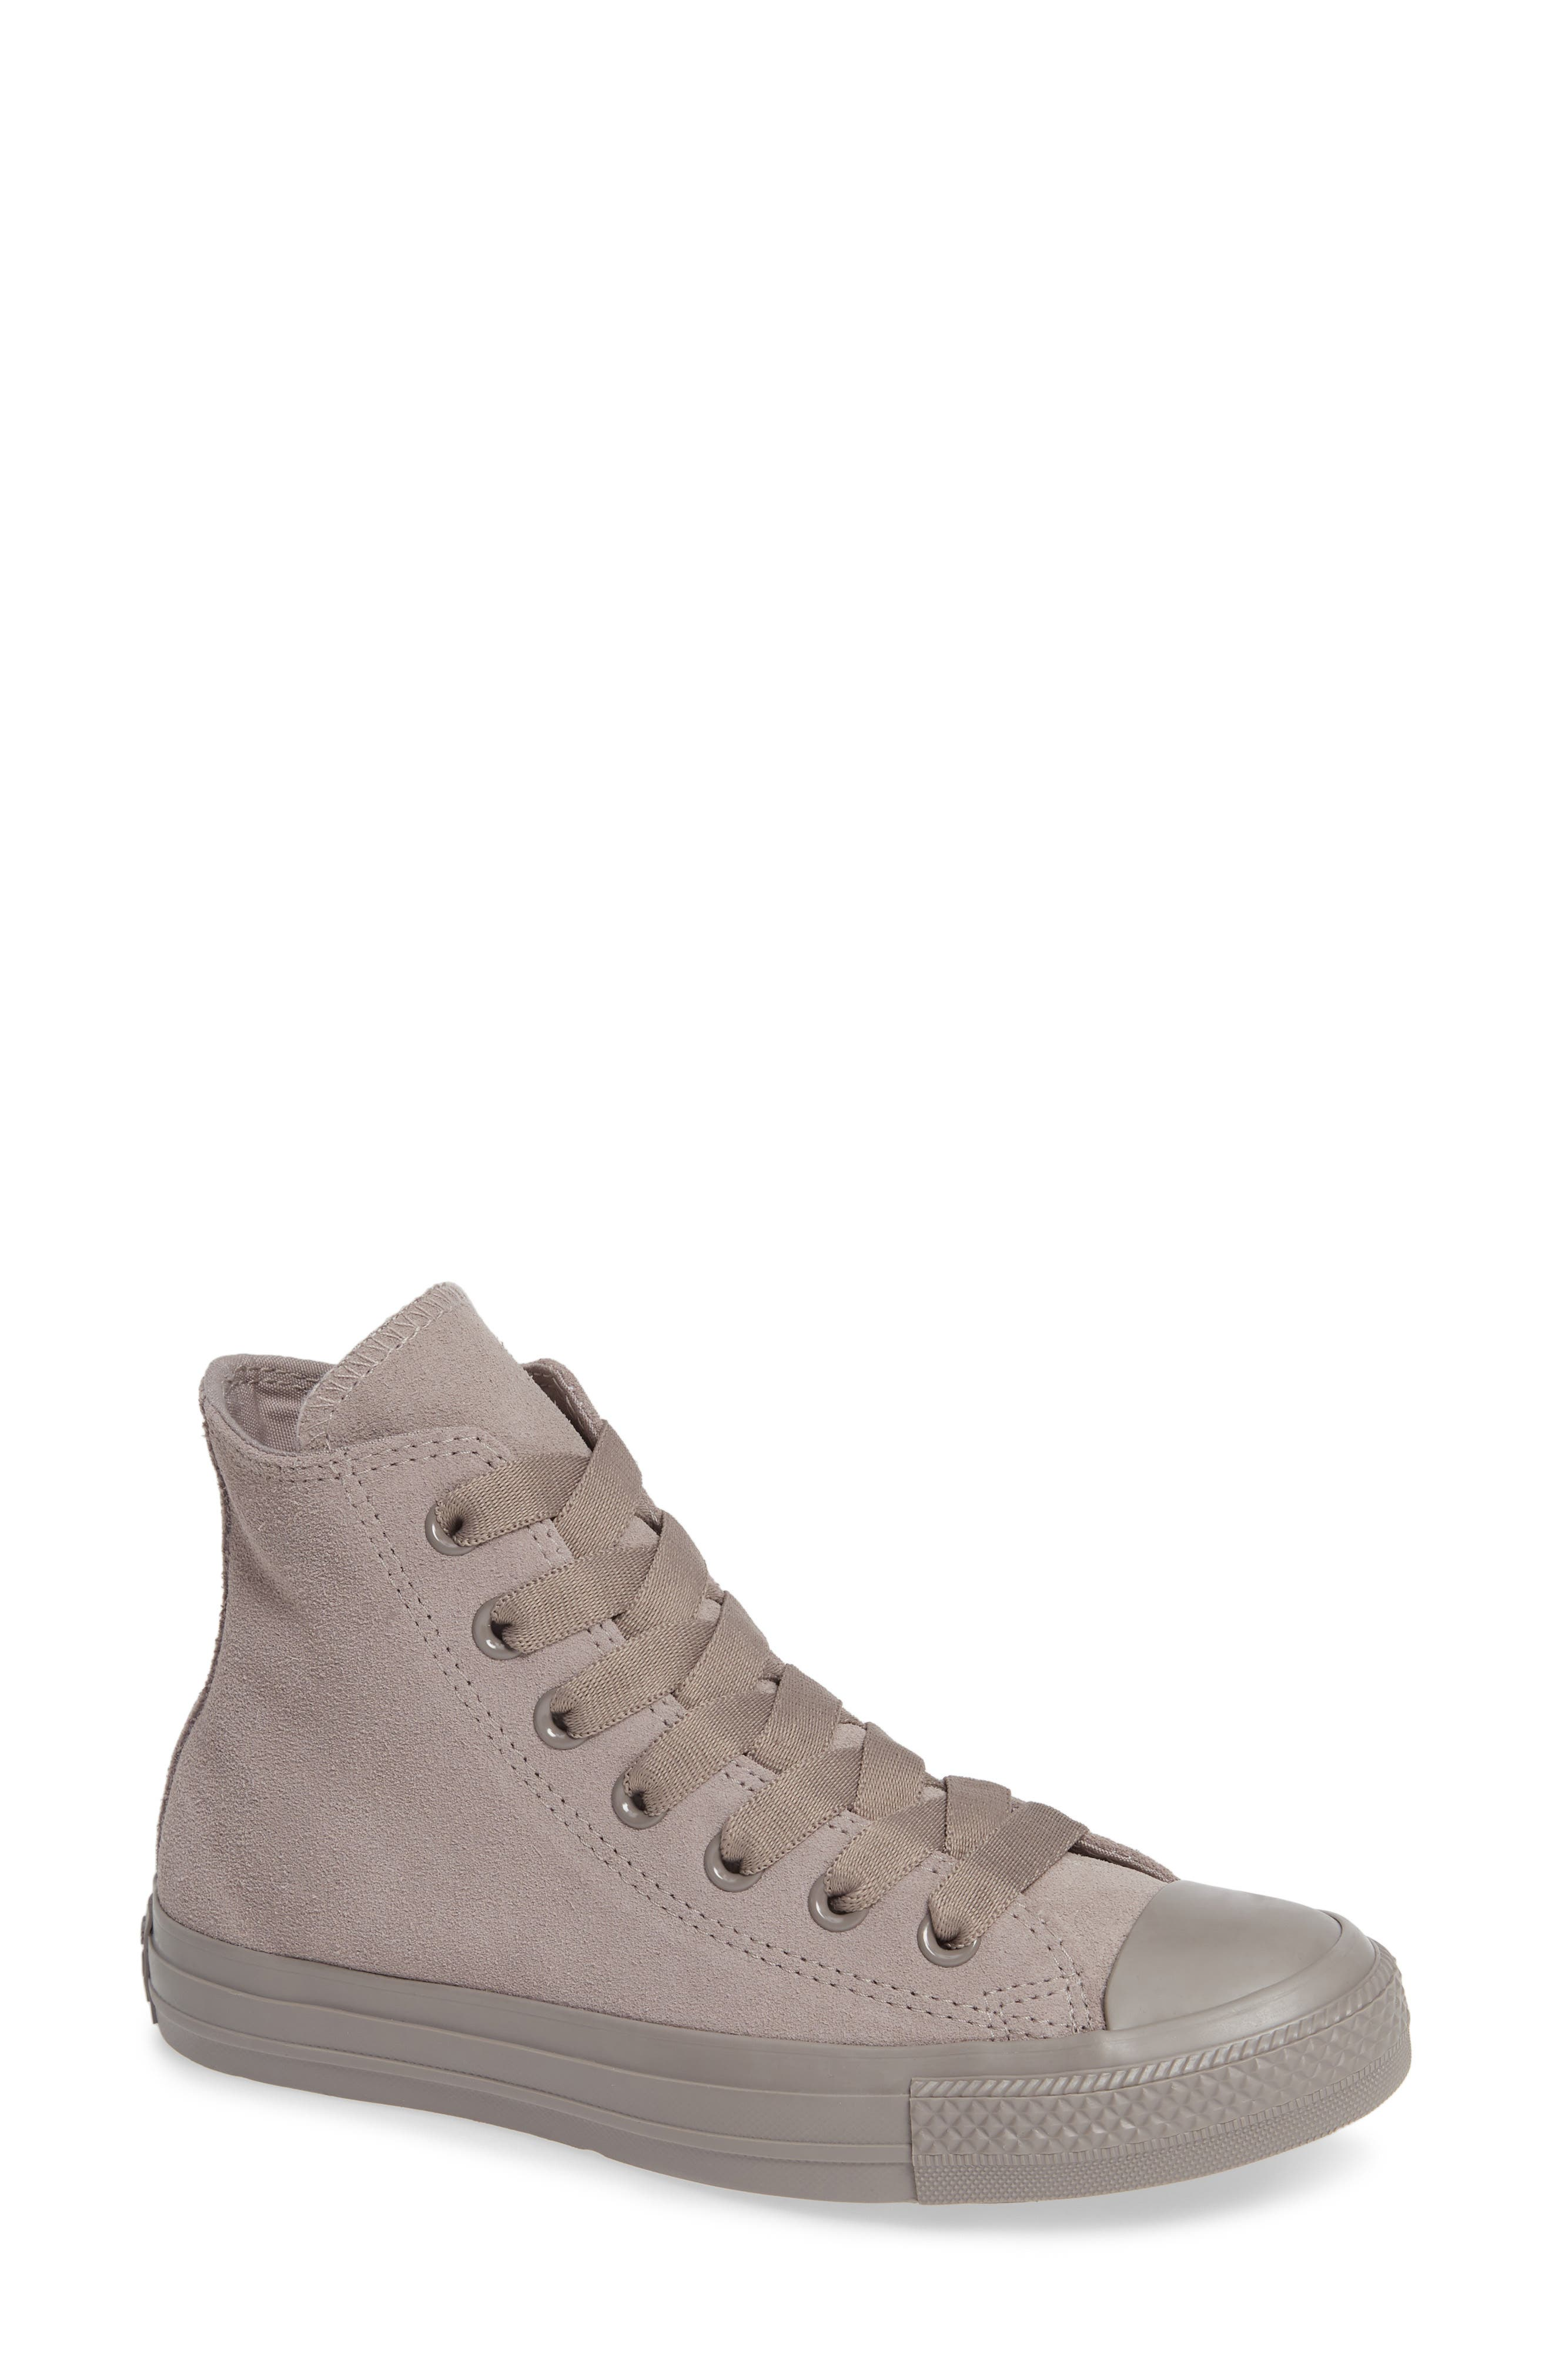 CONVERSE Chuck Taylor<sup>®</sup> All Star<sup>®</sup> Hi Sneaker, Main, color, MERCURY GREY SUEDE